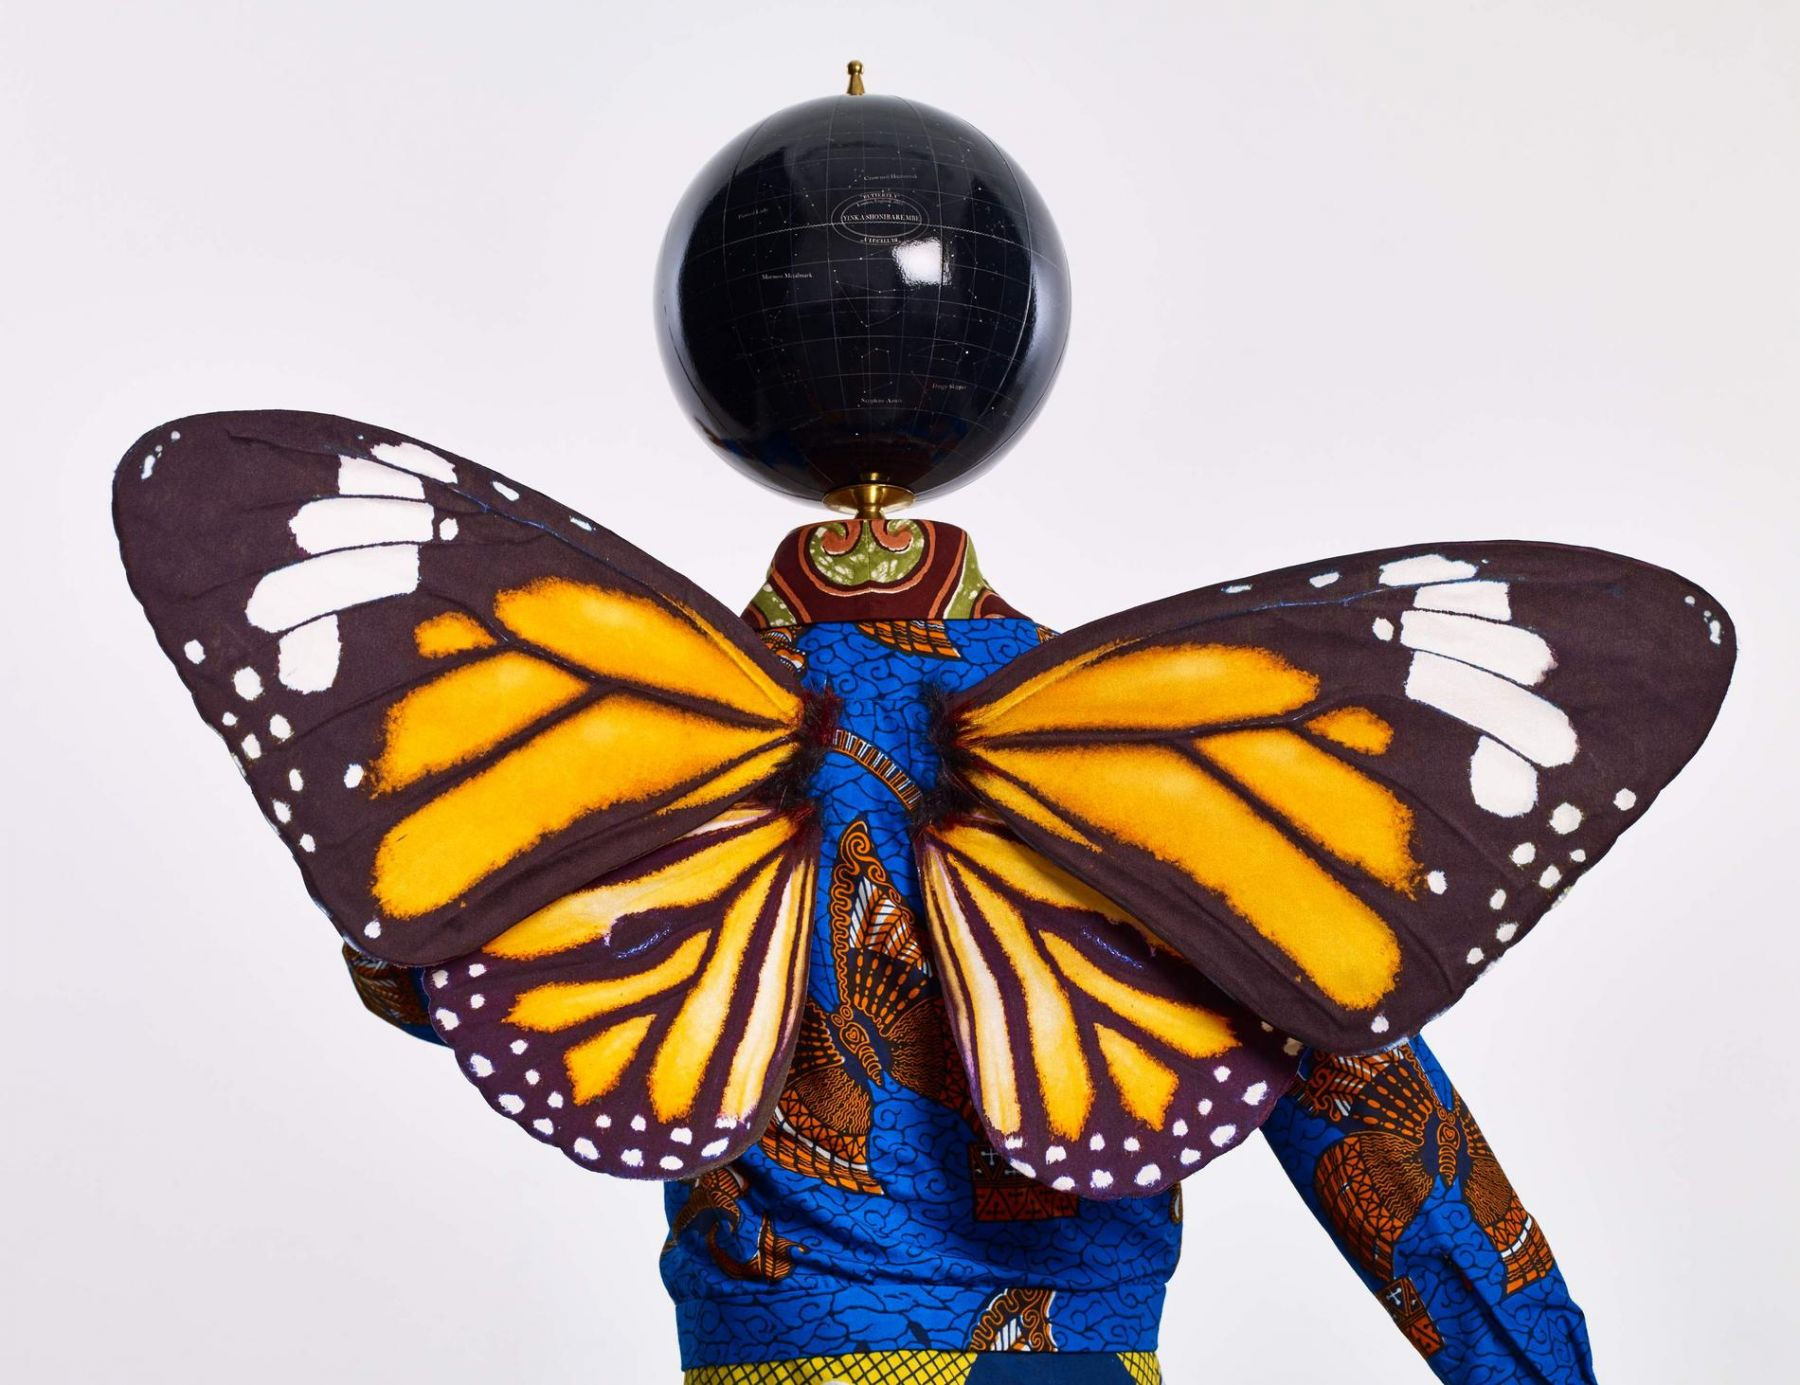 , YINKA SHONIBARE, MBE Butterfly Kid (boy) (detail), 2015 Fiberglass mannequin, Dutch wax printed cotton textile, silk, metal, globe, leather and steel baseplate 50 x 29 1/2 x 34 5/8 in. (127 x 75 x 88 cm)